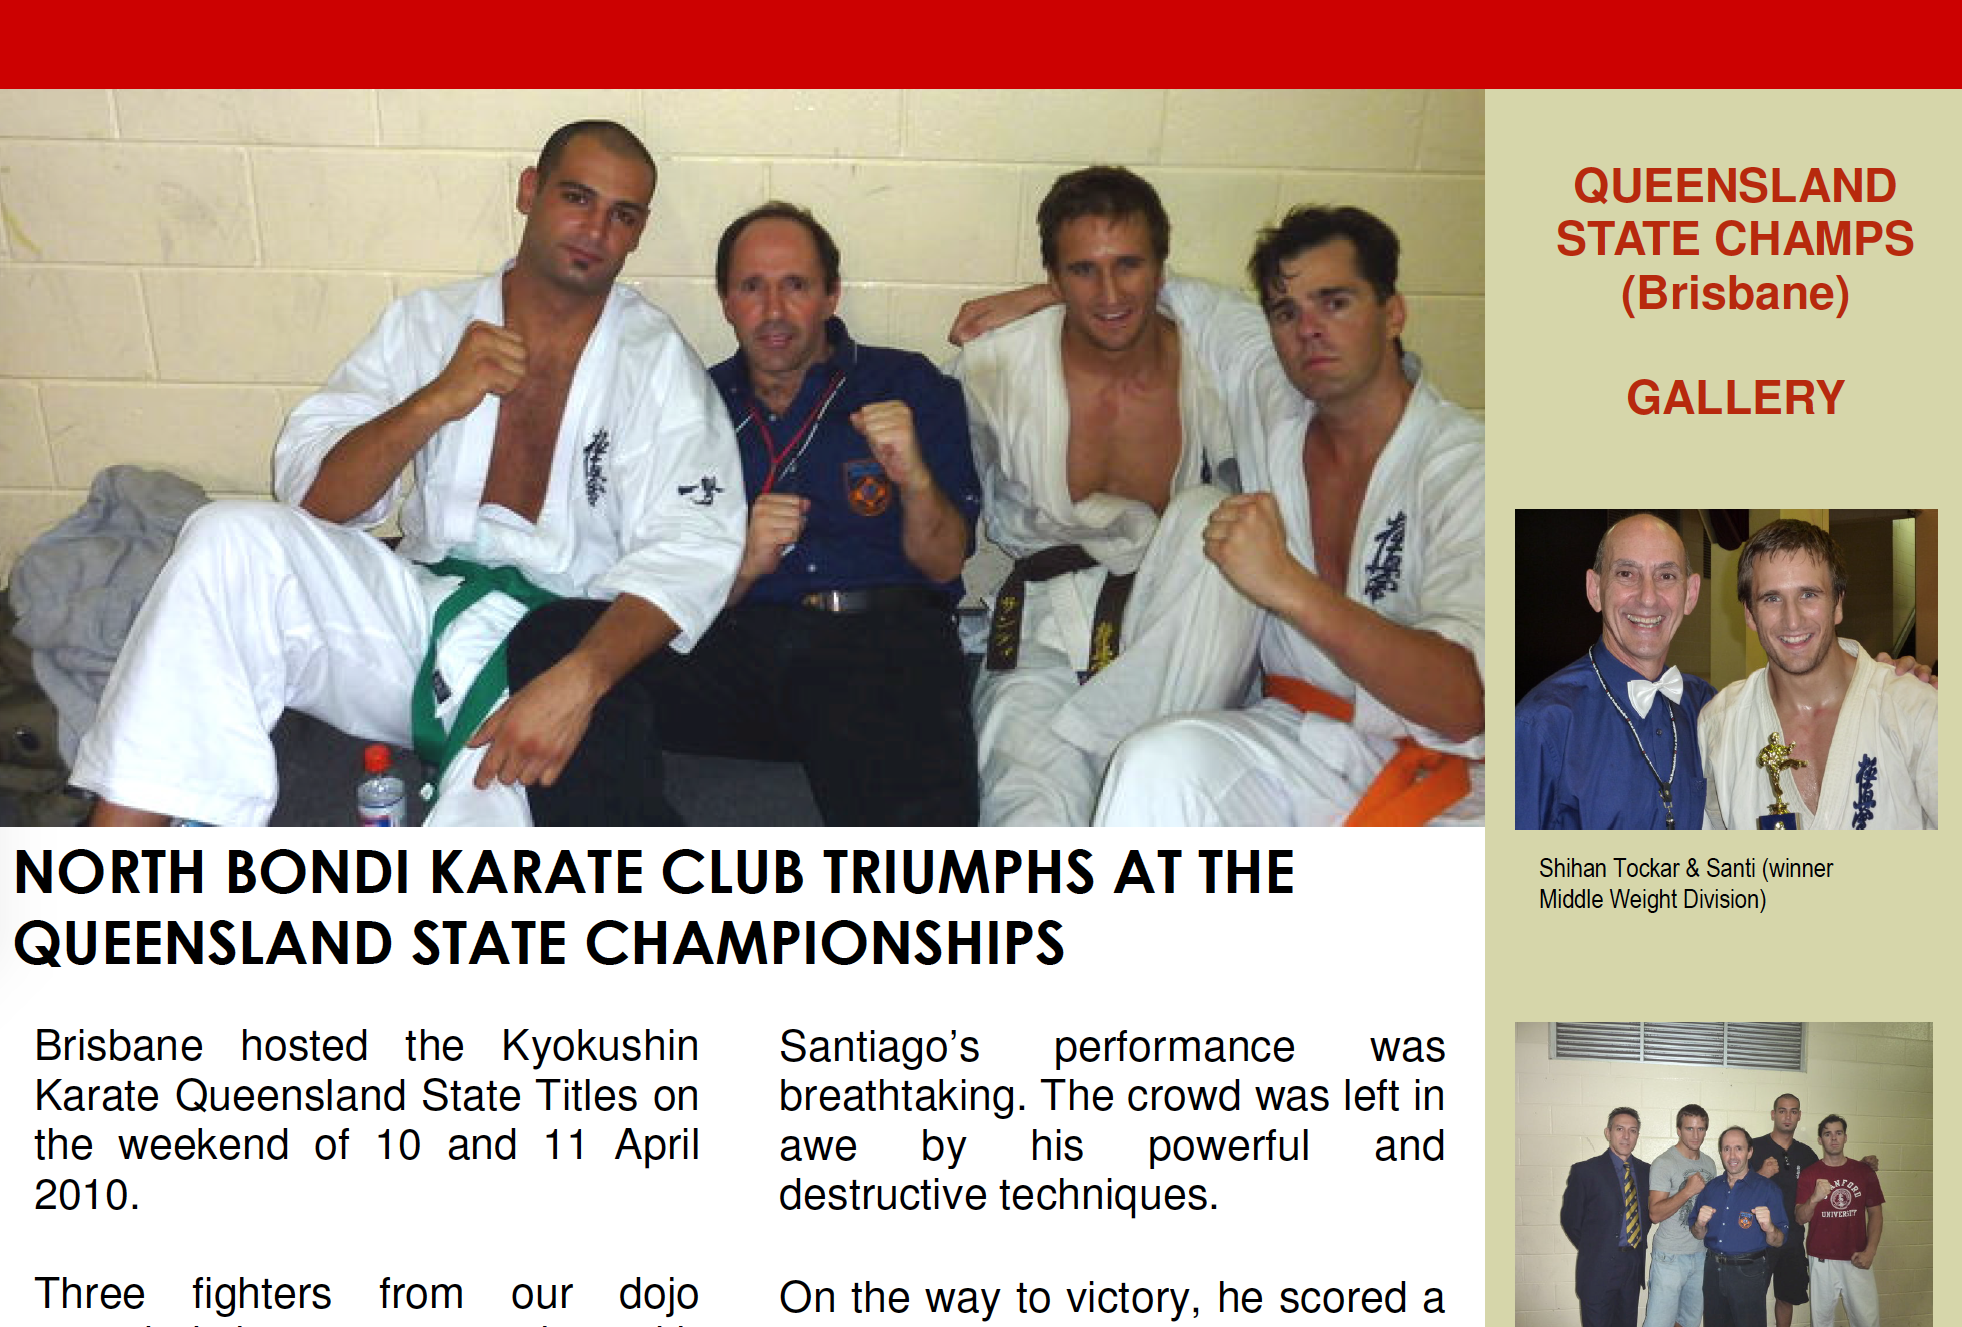 2010 QLD State Titles - Read shihan Tockar's tournament report for the 2010 QLD State Titles (Brisbane, Australia)